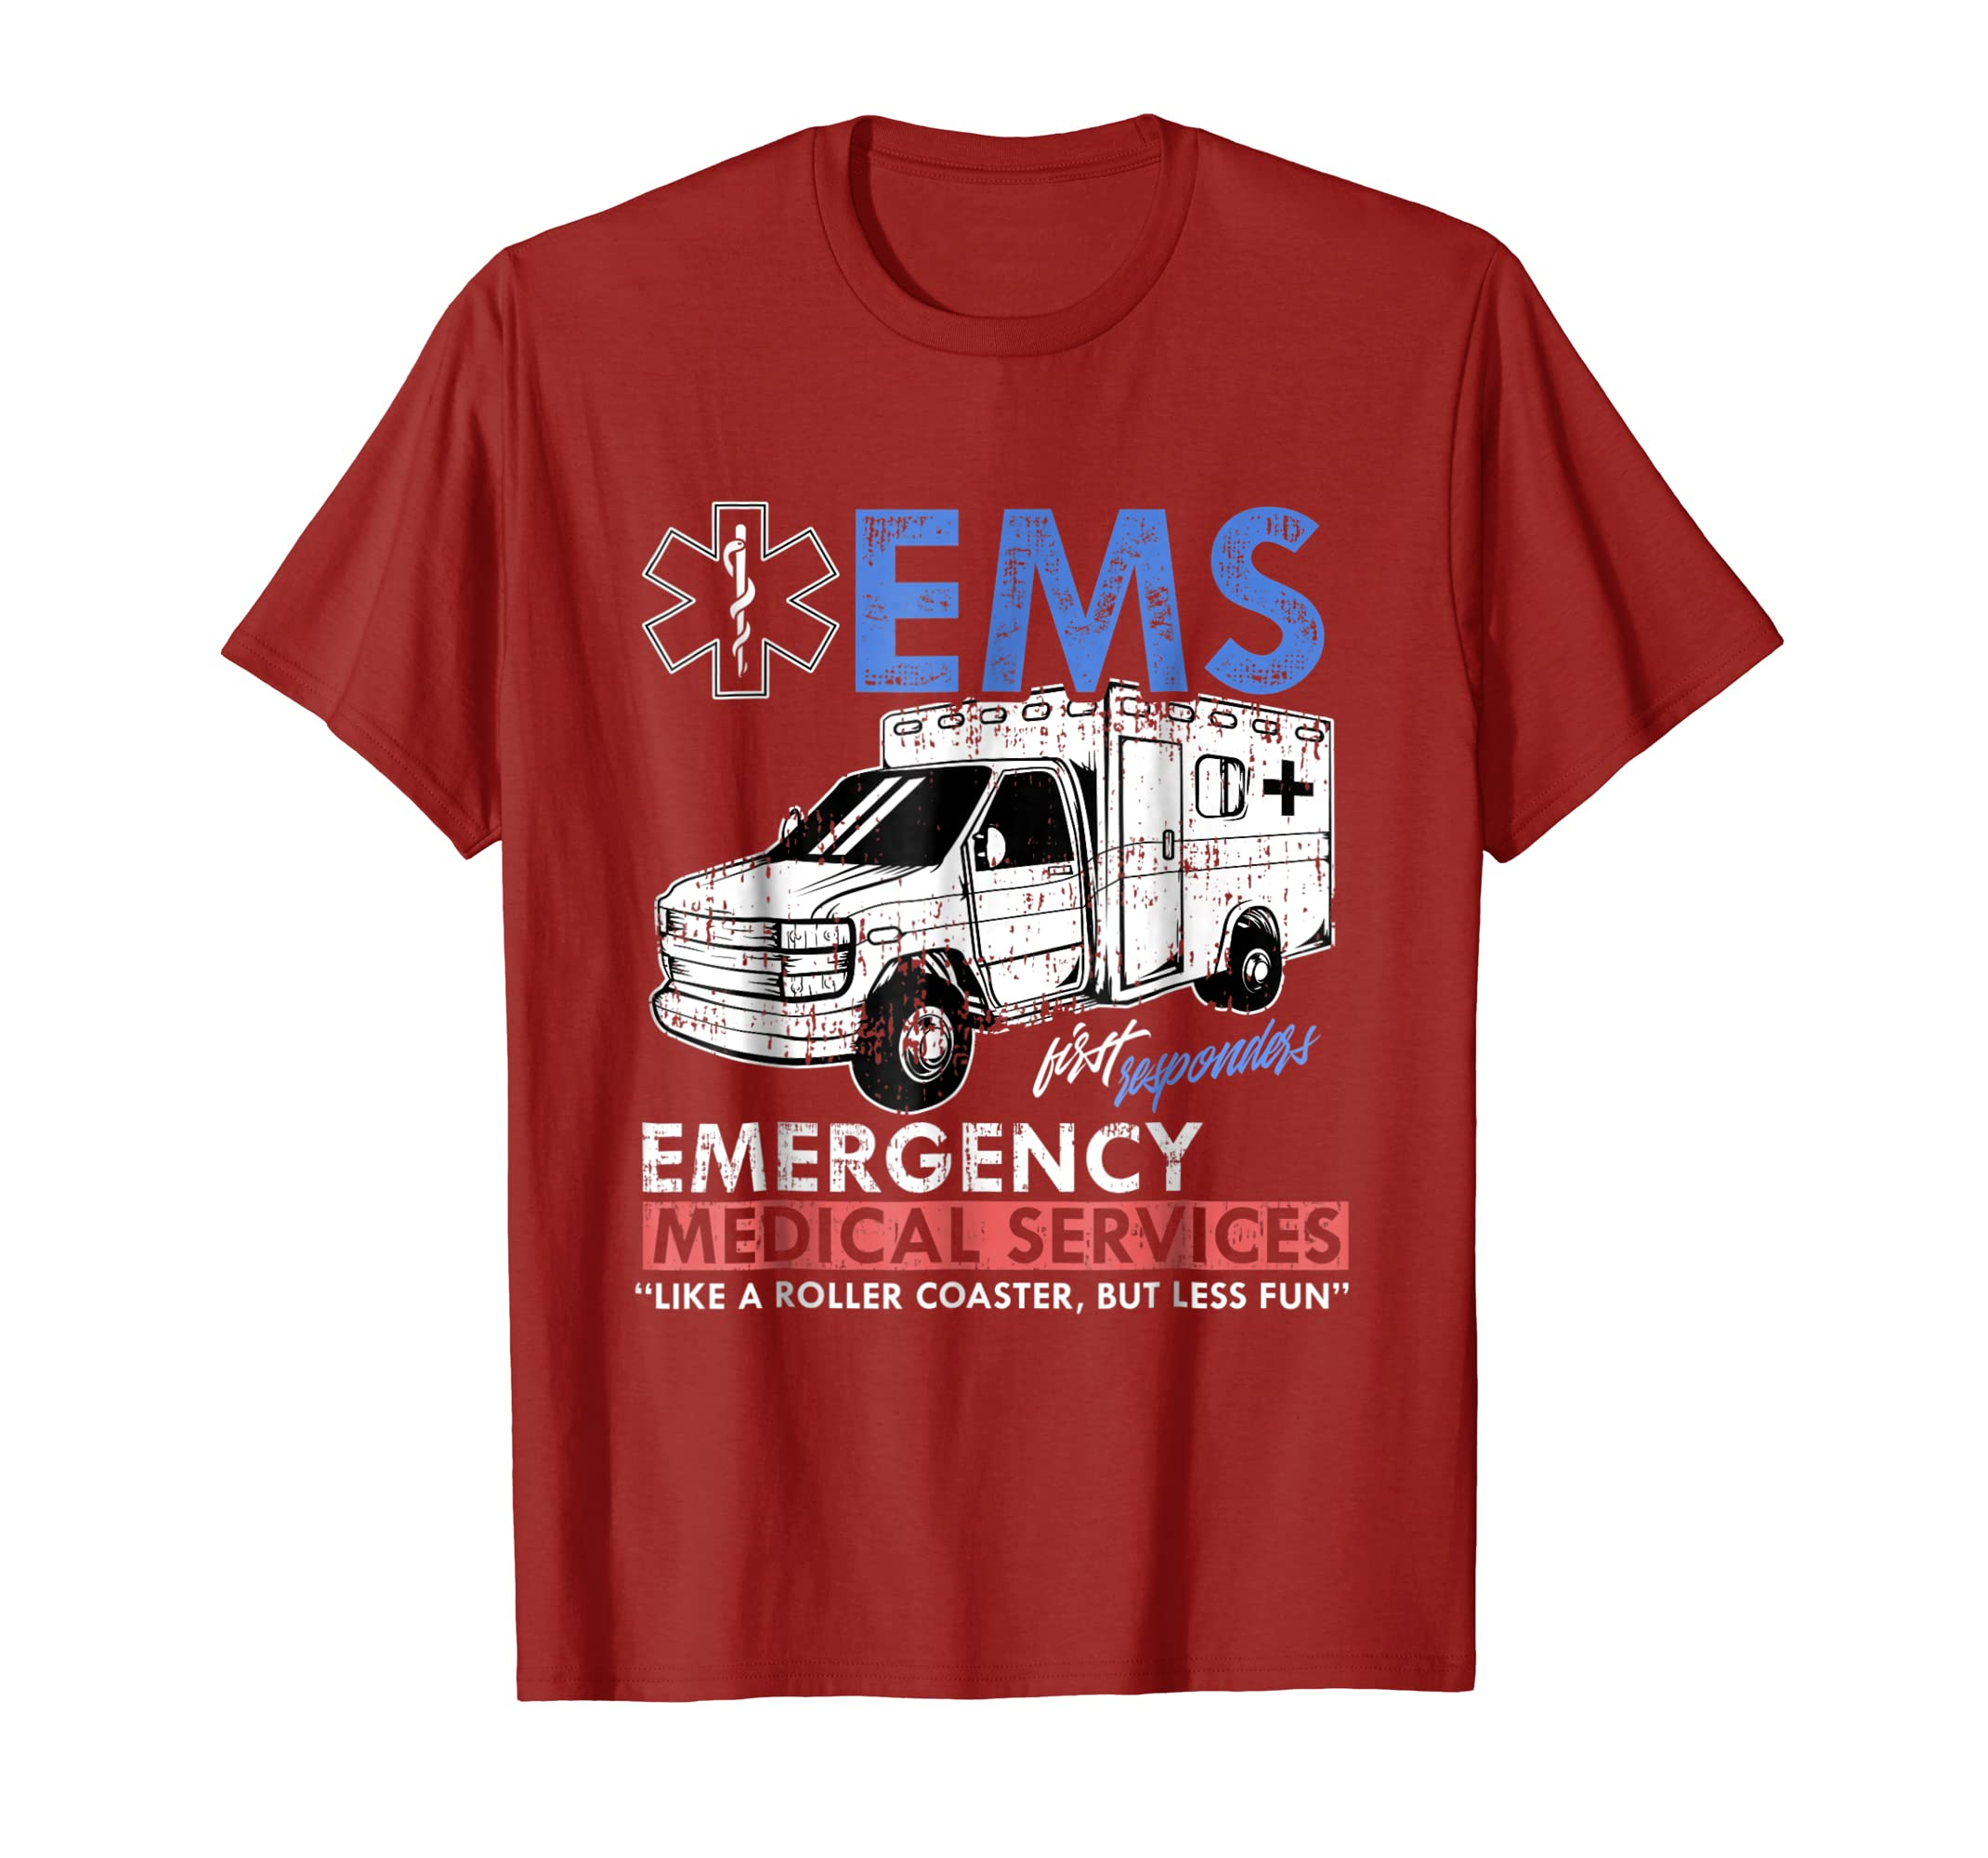 Ambulance Funny EMS T shirt for Emergency Medical Services-Bawle